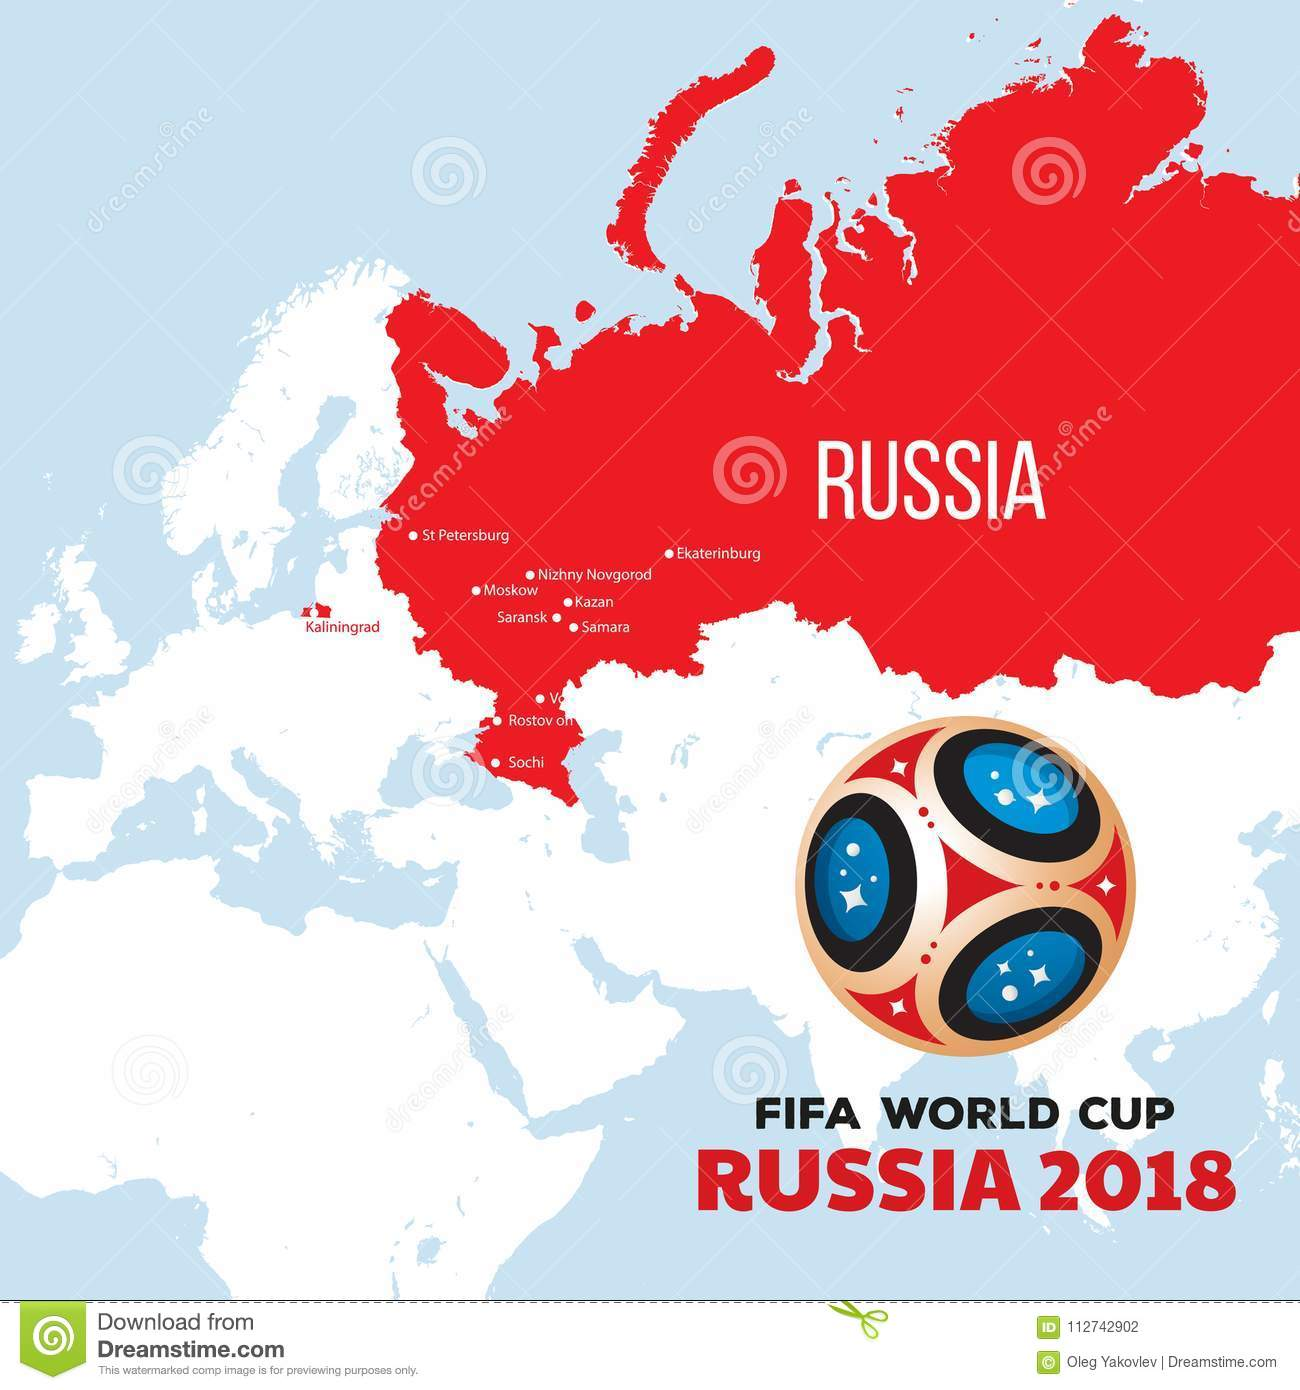 Russia world cup 2018 stock illustration. Illustration of ...